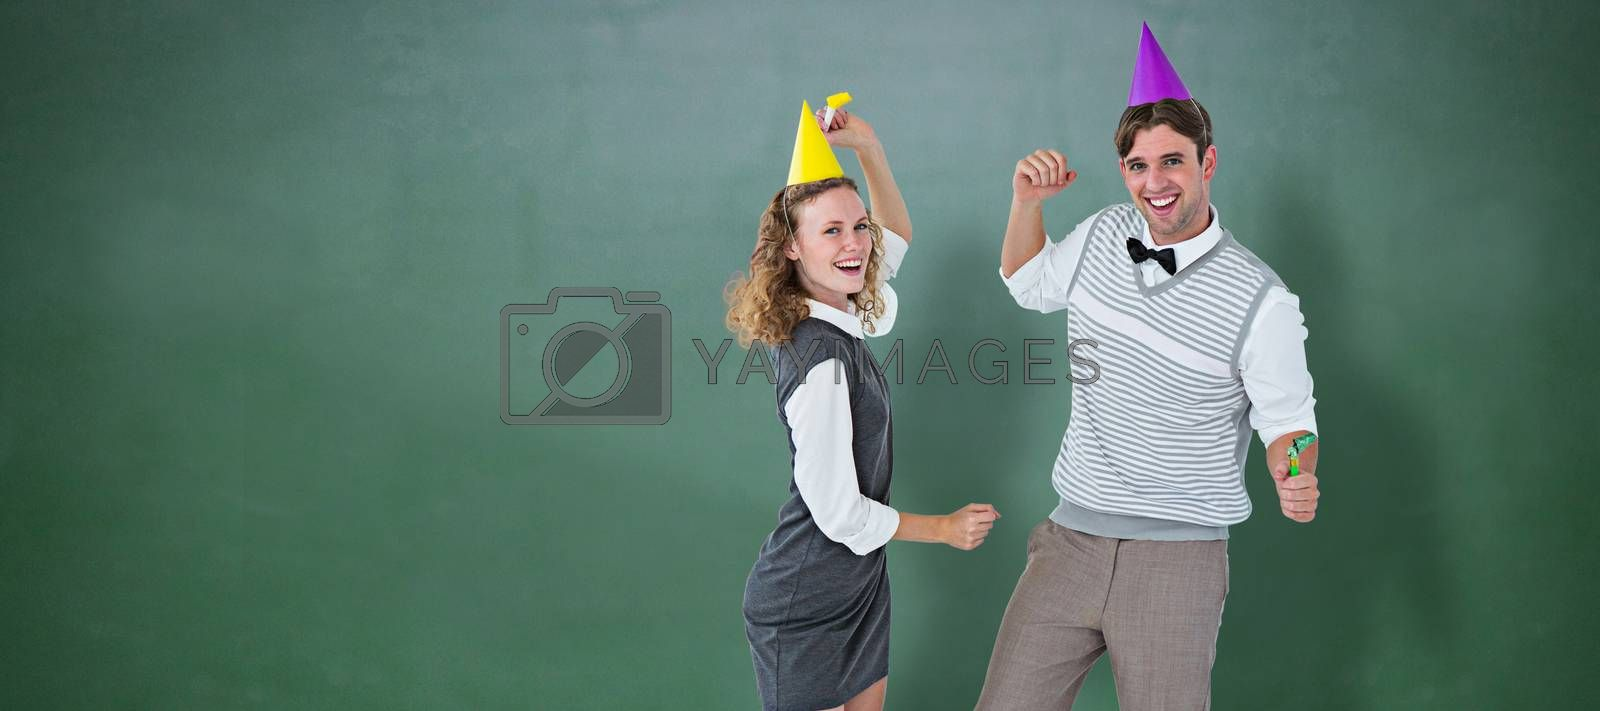 Geeky couple dancing with party hat  against green chalkboard